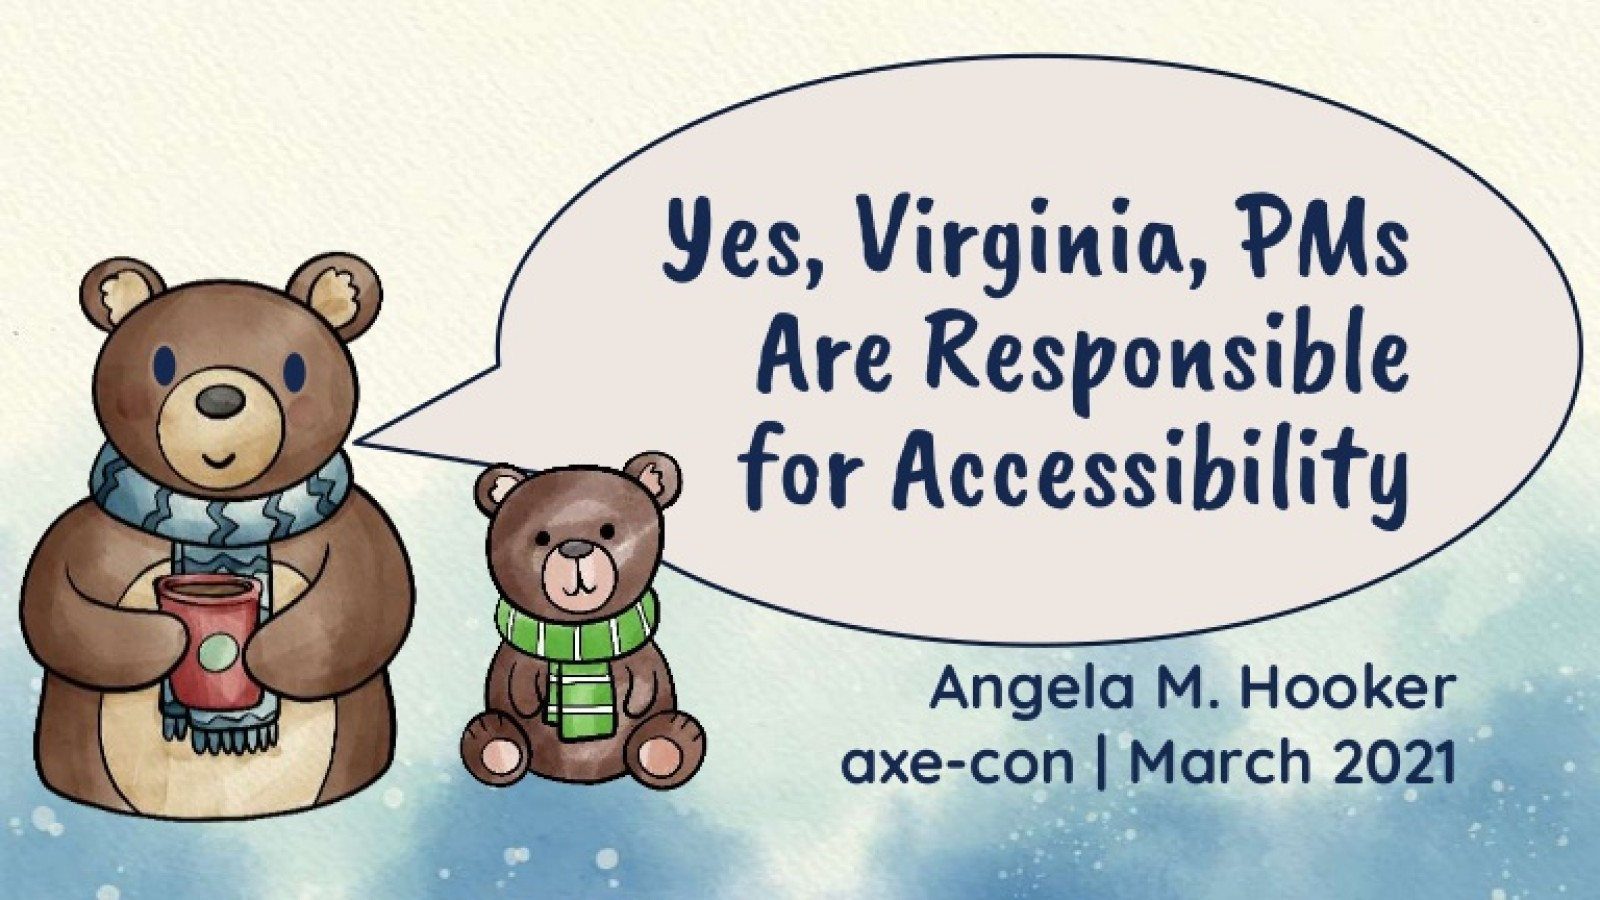 Yes, Virginia, PMs Are Responsible for Accessibility